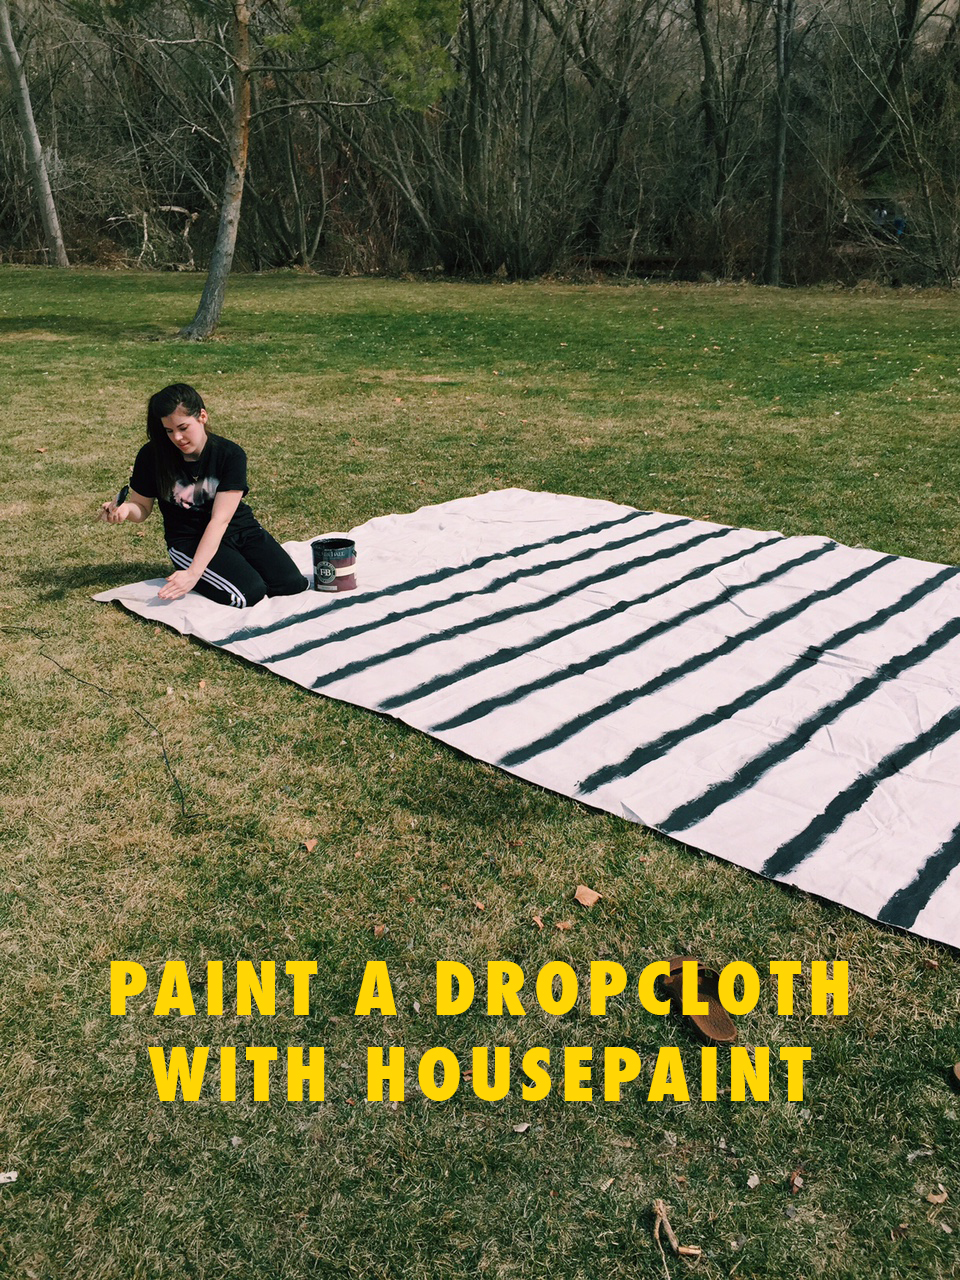 Paint a dropcloth with housepaint